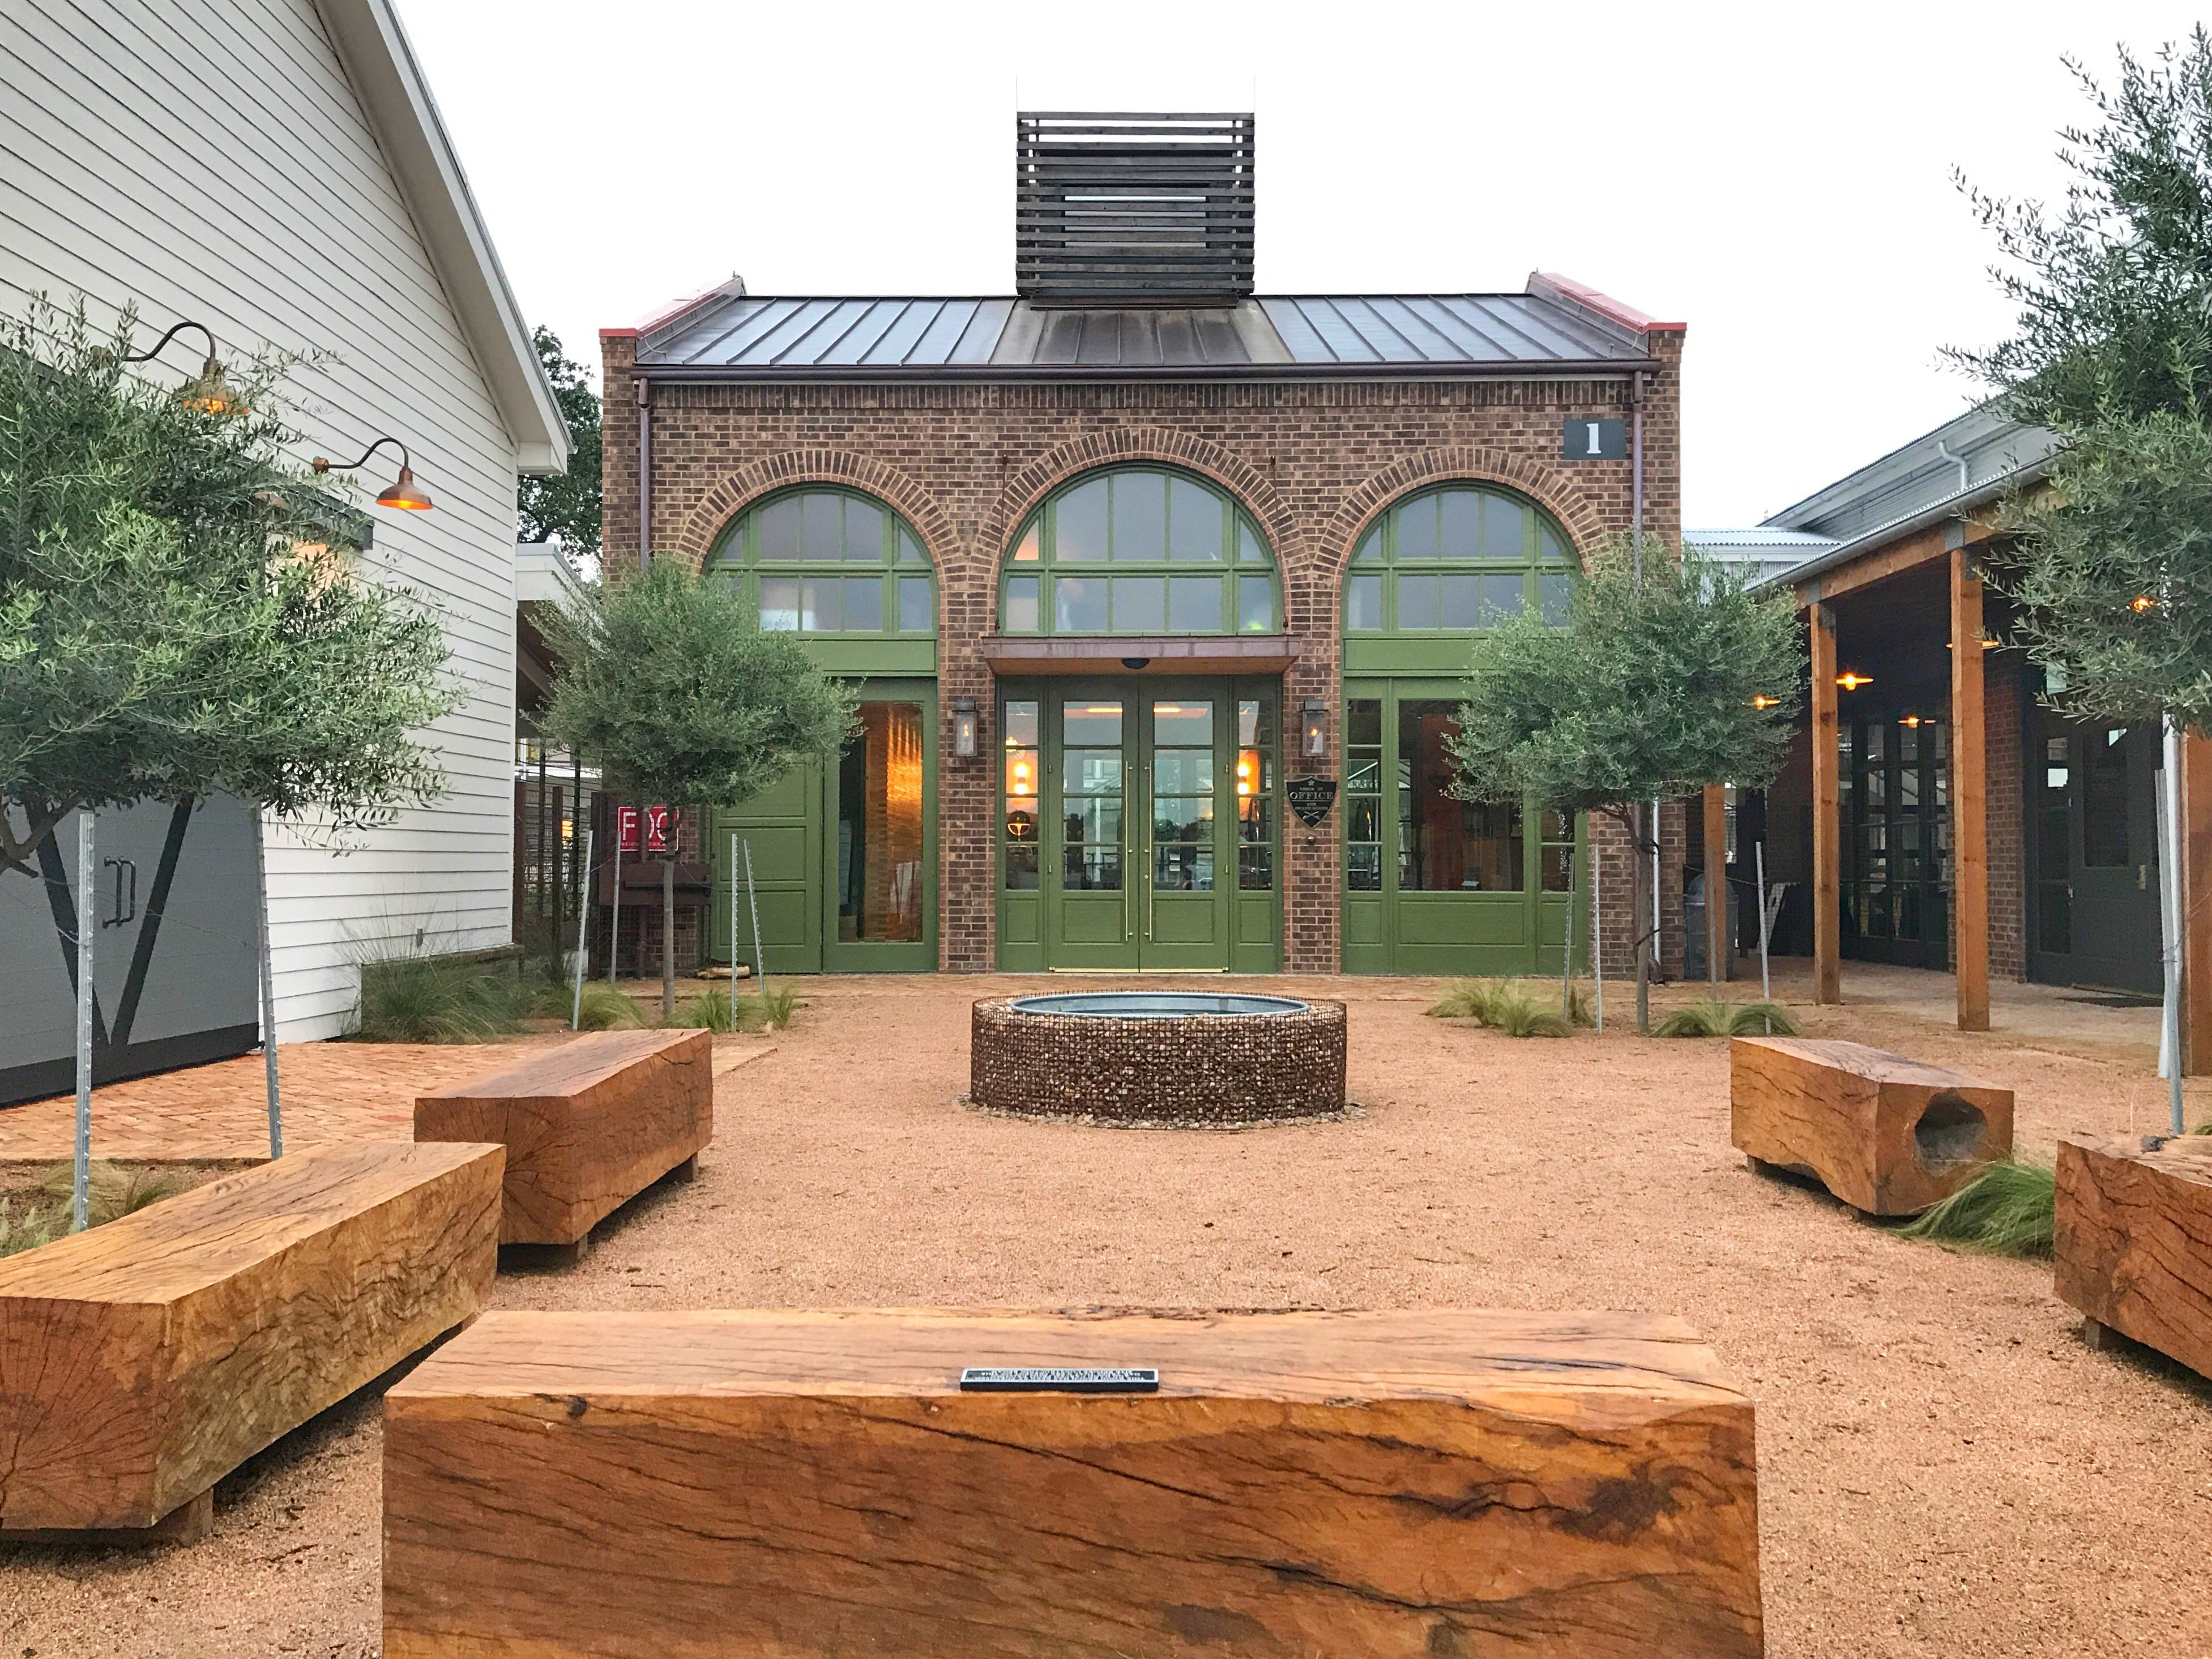 College Station's Cavalry Court courtyard by front desk